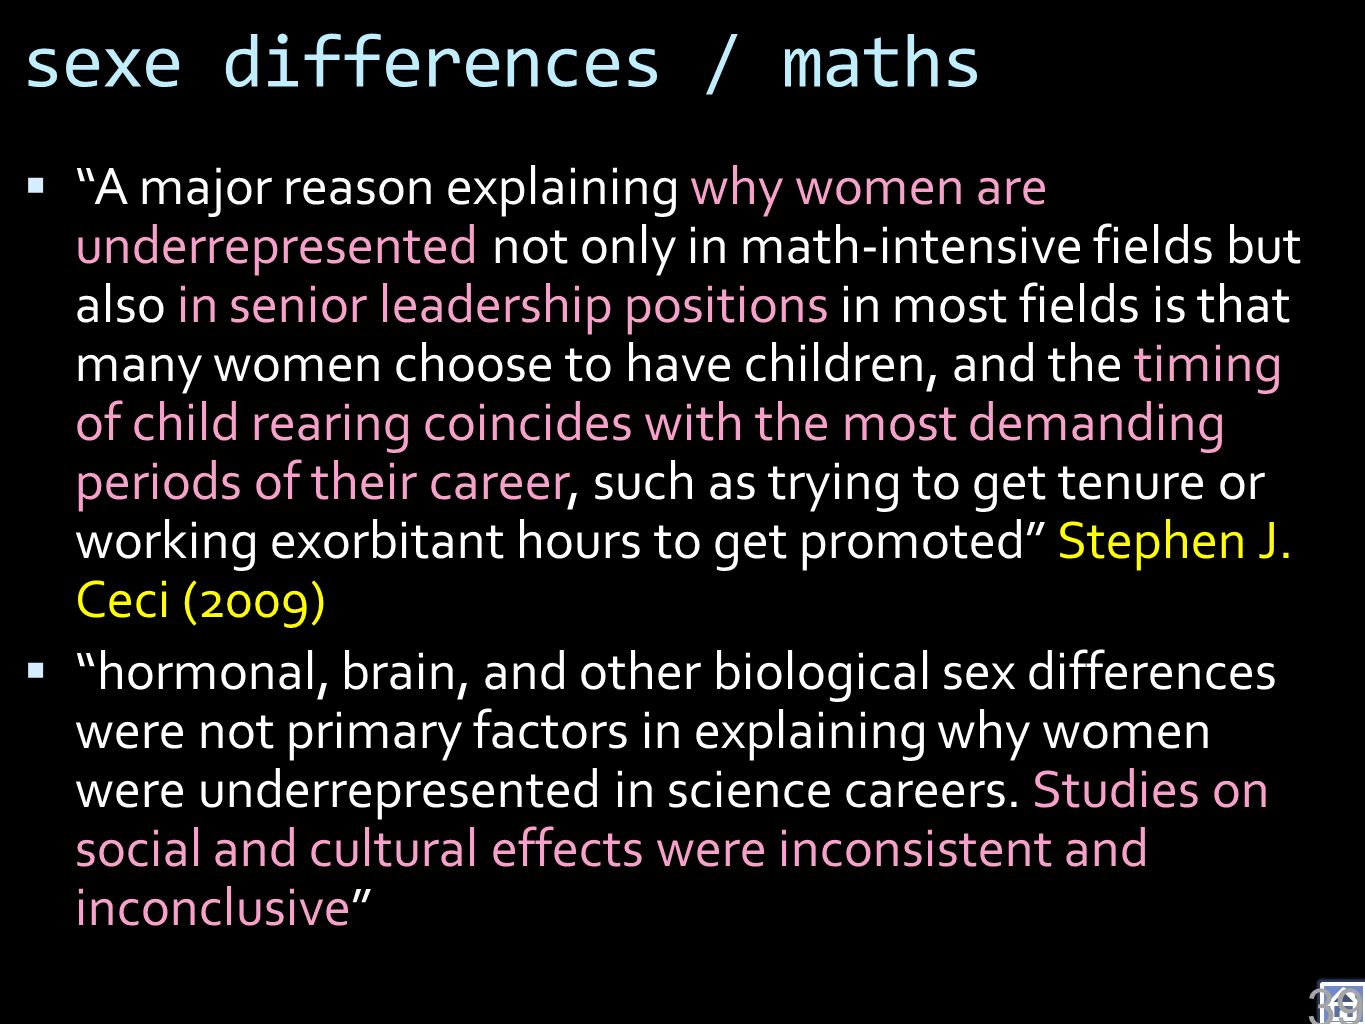 sexe differences / maths